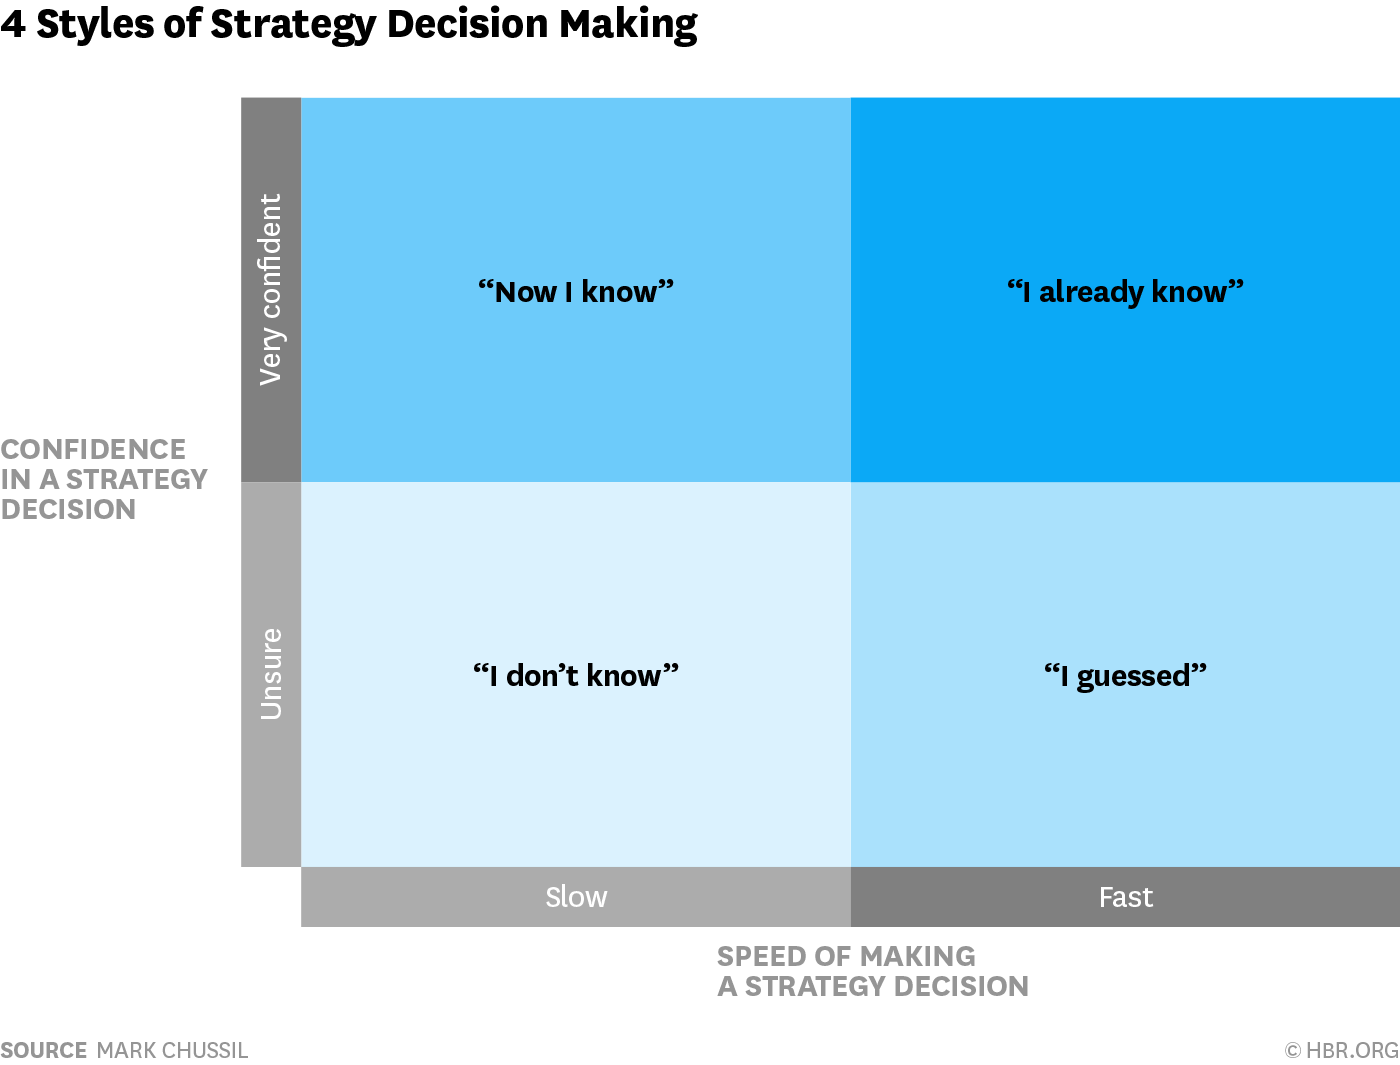 Slow Deciders Make Better Strategists